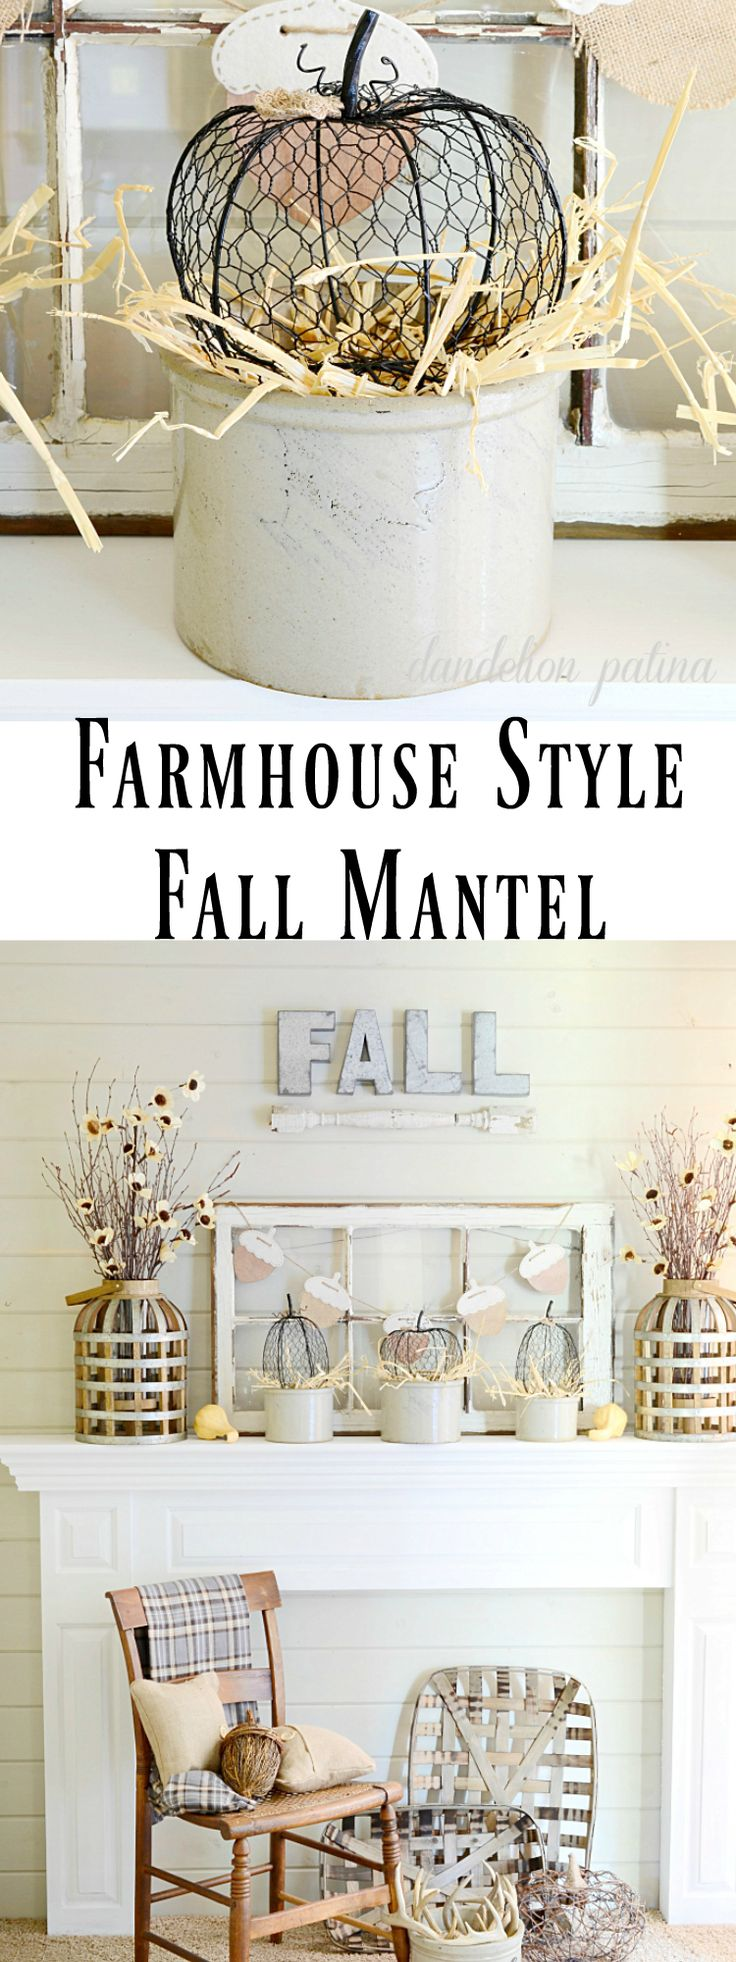 Looking For Inspiring Fall Decorating Ideas With Farmhouse Flair? This  Farmhouseu2026